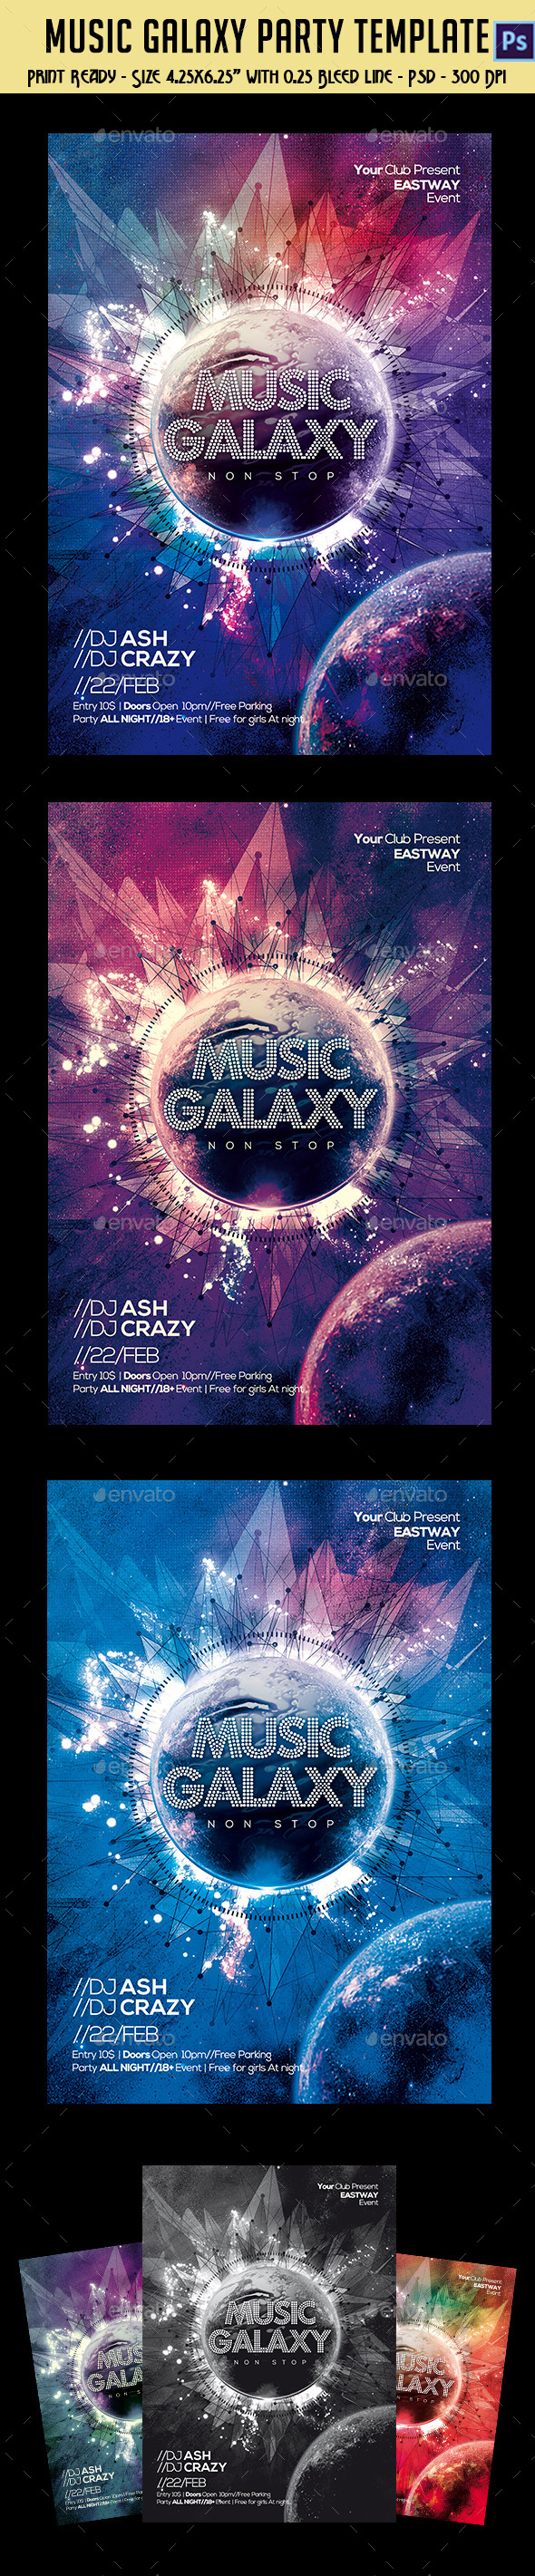 GraphicRiver Music Galaxy Party Template 10547386